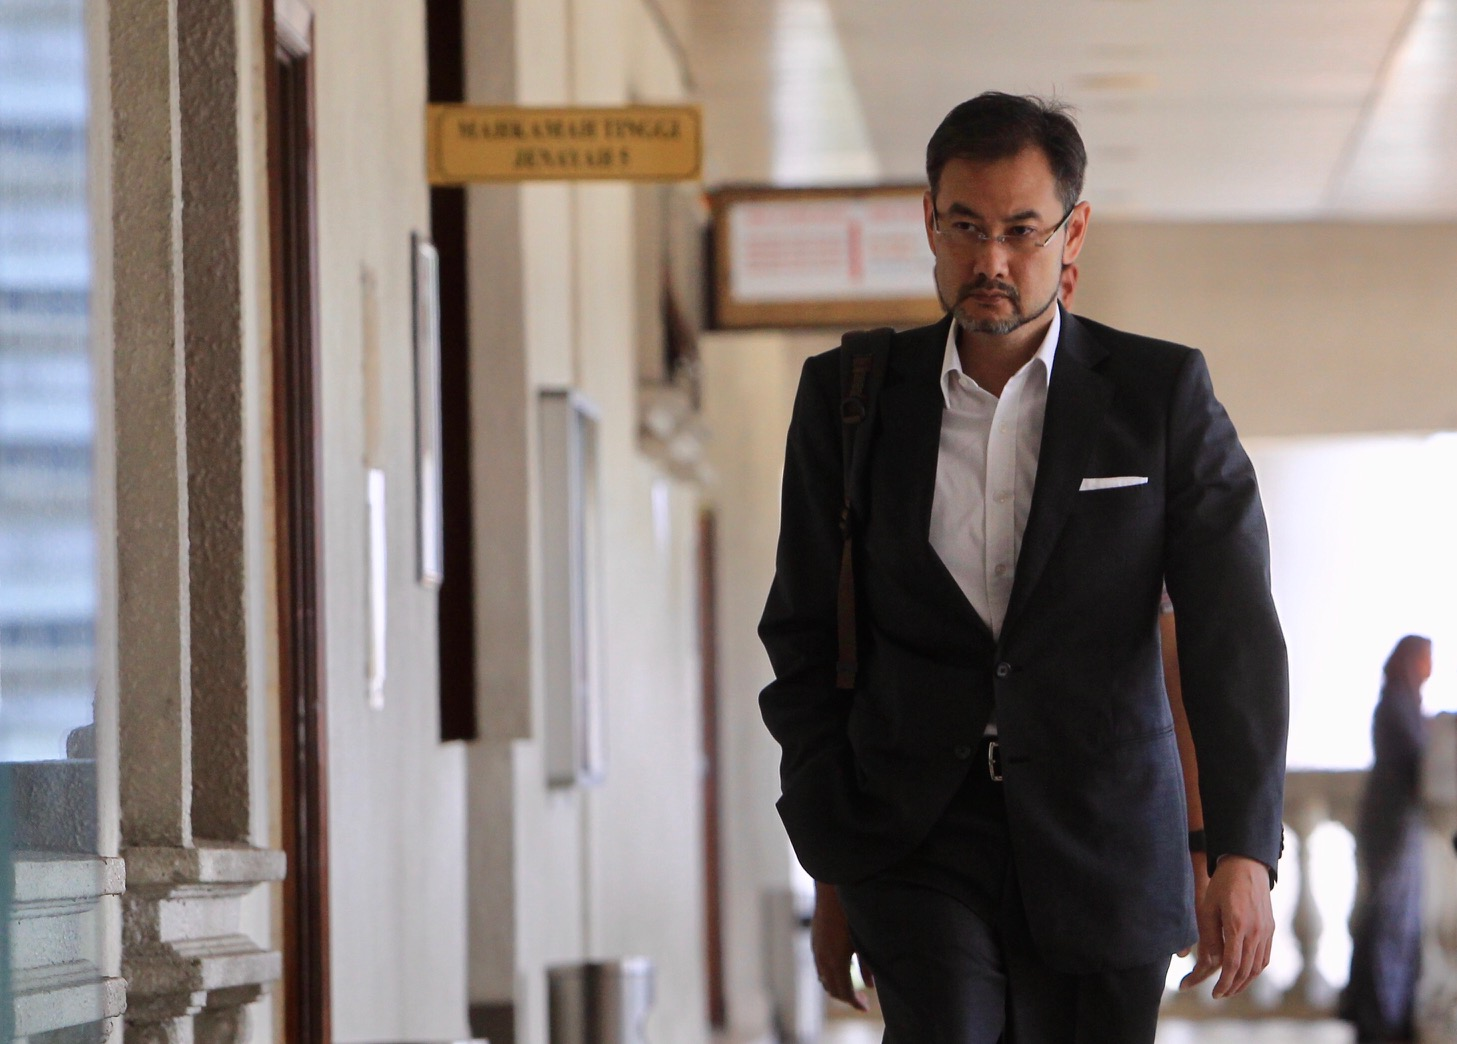 1MDB-Tanore Trial Day 22: Back to full-day hearing after Tuesday's false start